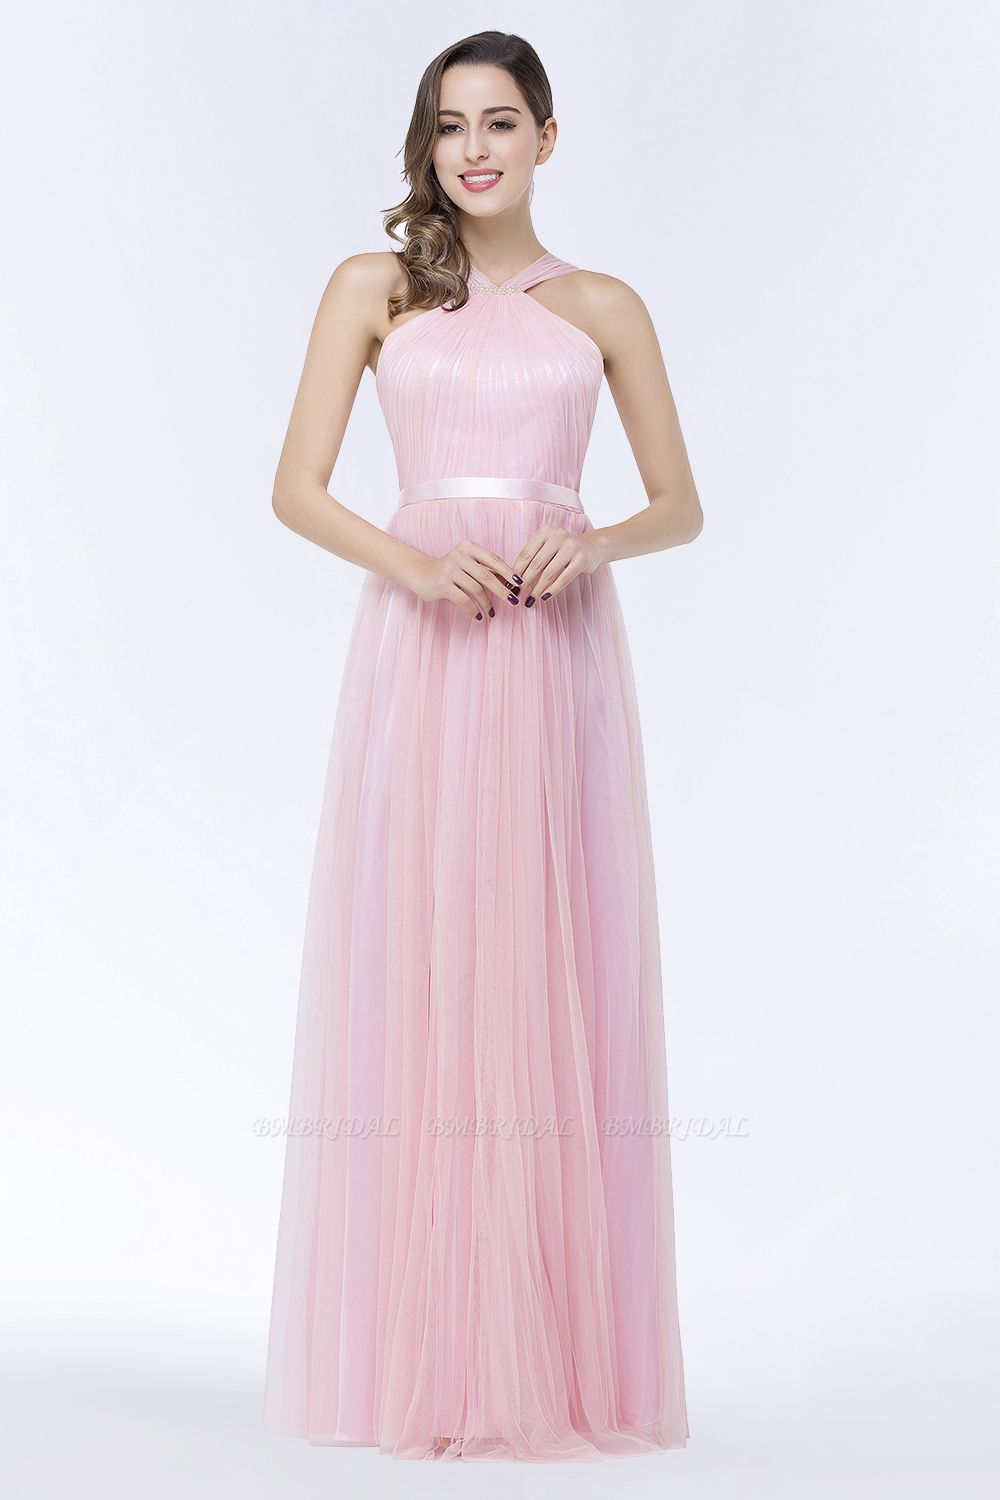 BMbridal Chic Tulle Ruffle Halter Sleeveless Pearls Bridesmaid Dress with Sash